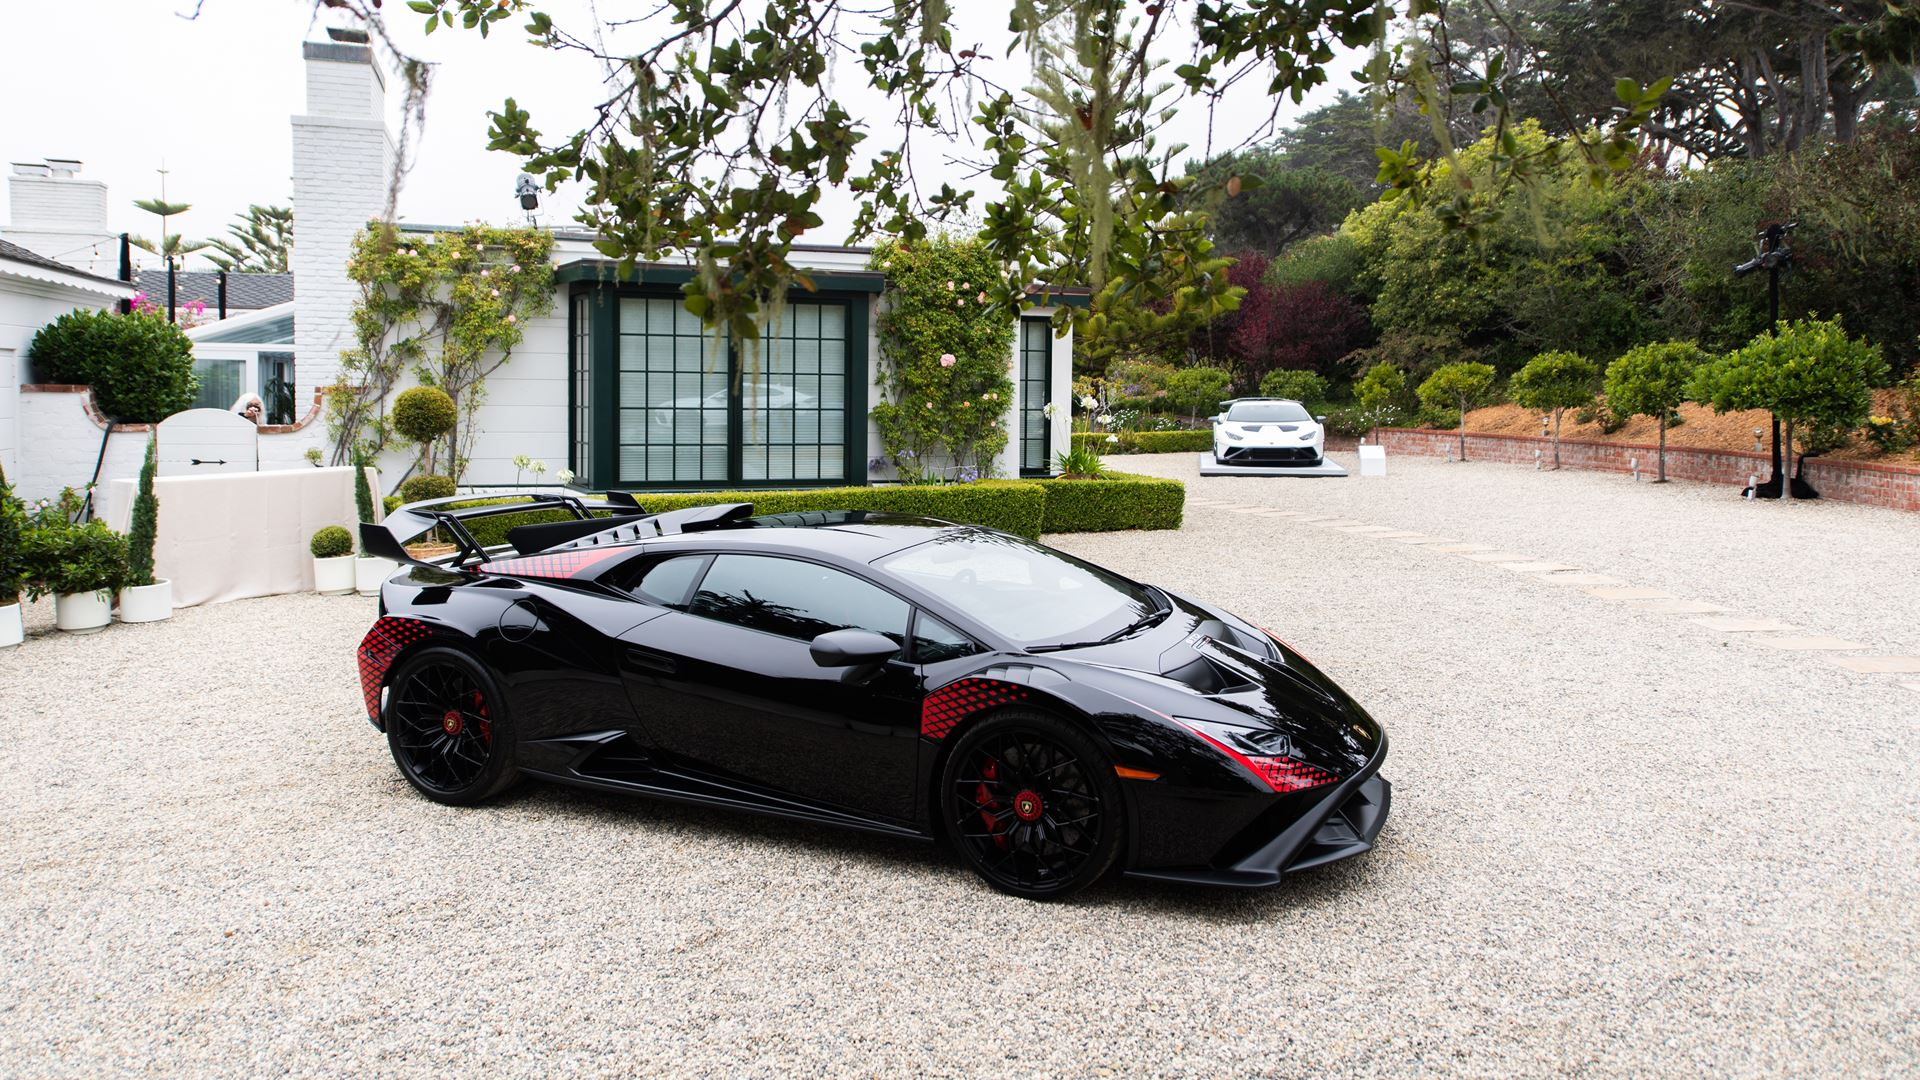 Lamborghini Opens Private Lounge During Monterey Car Week 2021 Showcasing the Brand's Ethos and Design DNA - Image 7